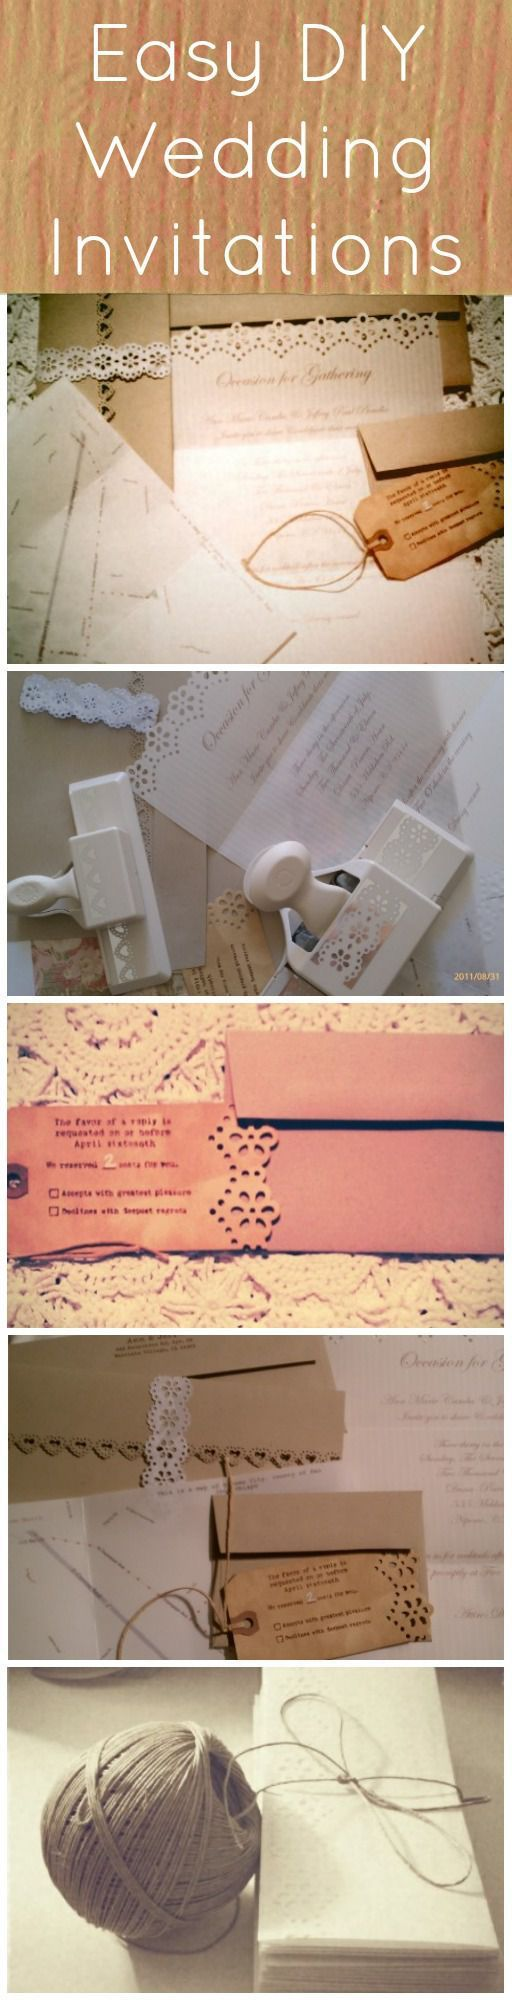 Diy Vintage Inspired Wedding Invitations Diy Wedding Invitations